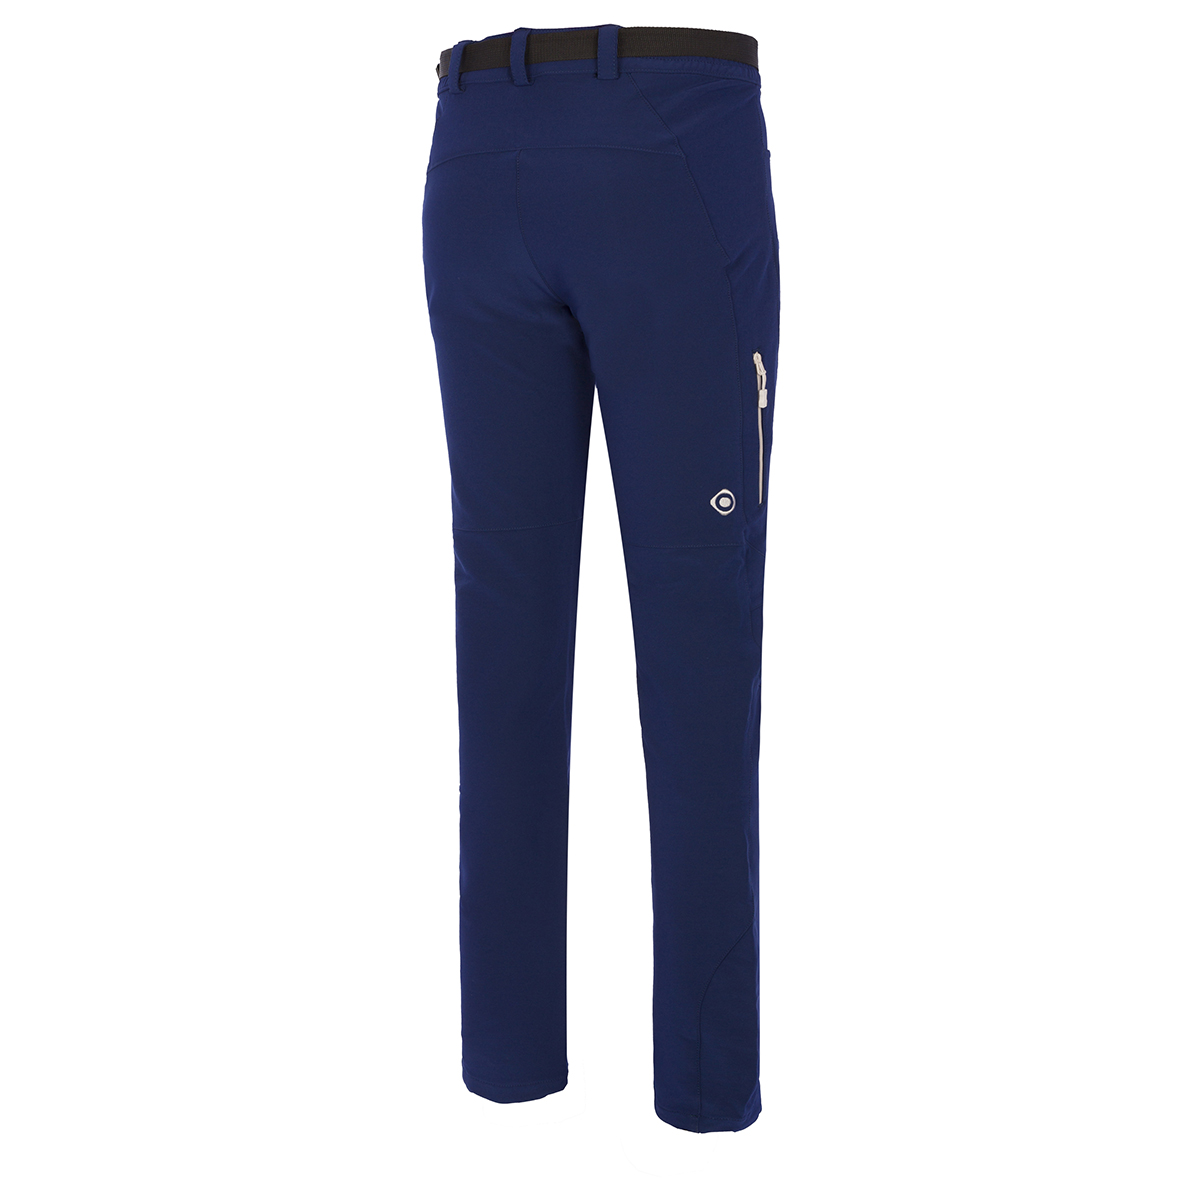 WOMAN'S ELAT STRETCH PANT BLUE